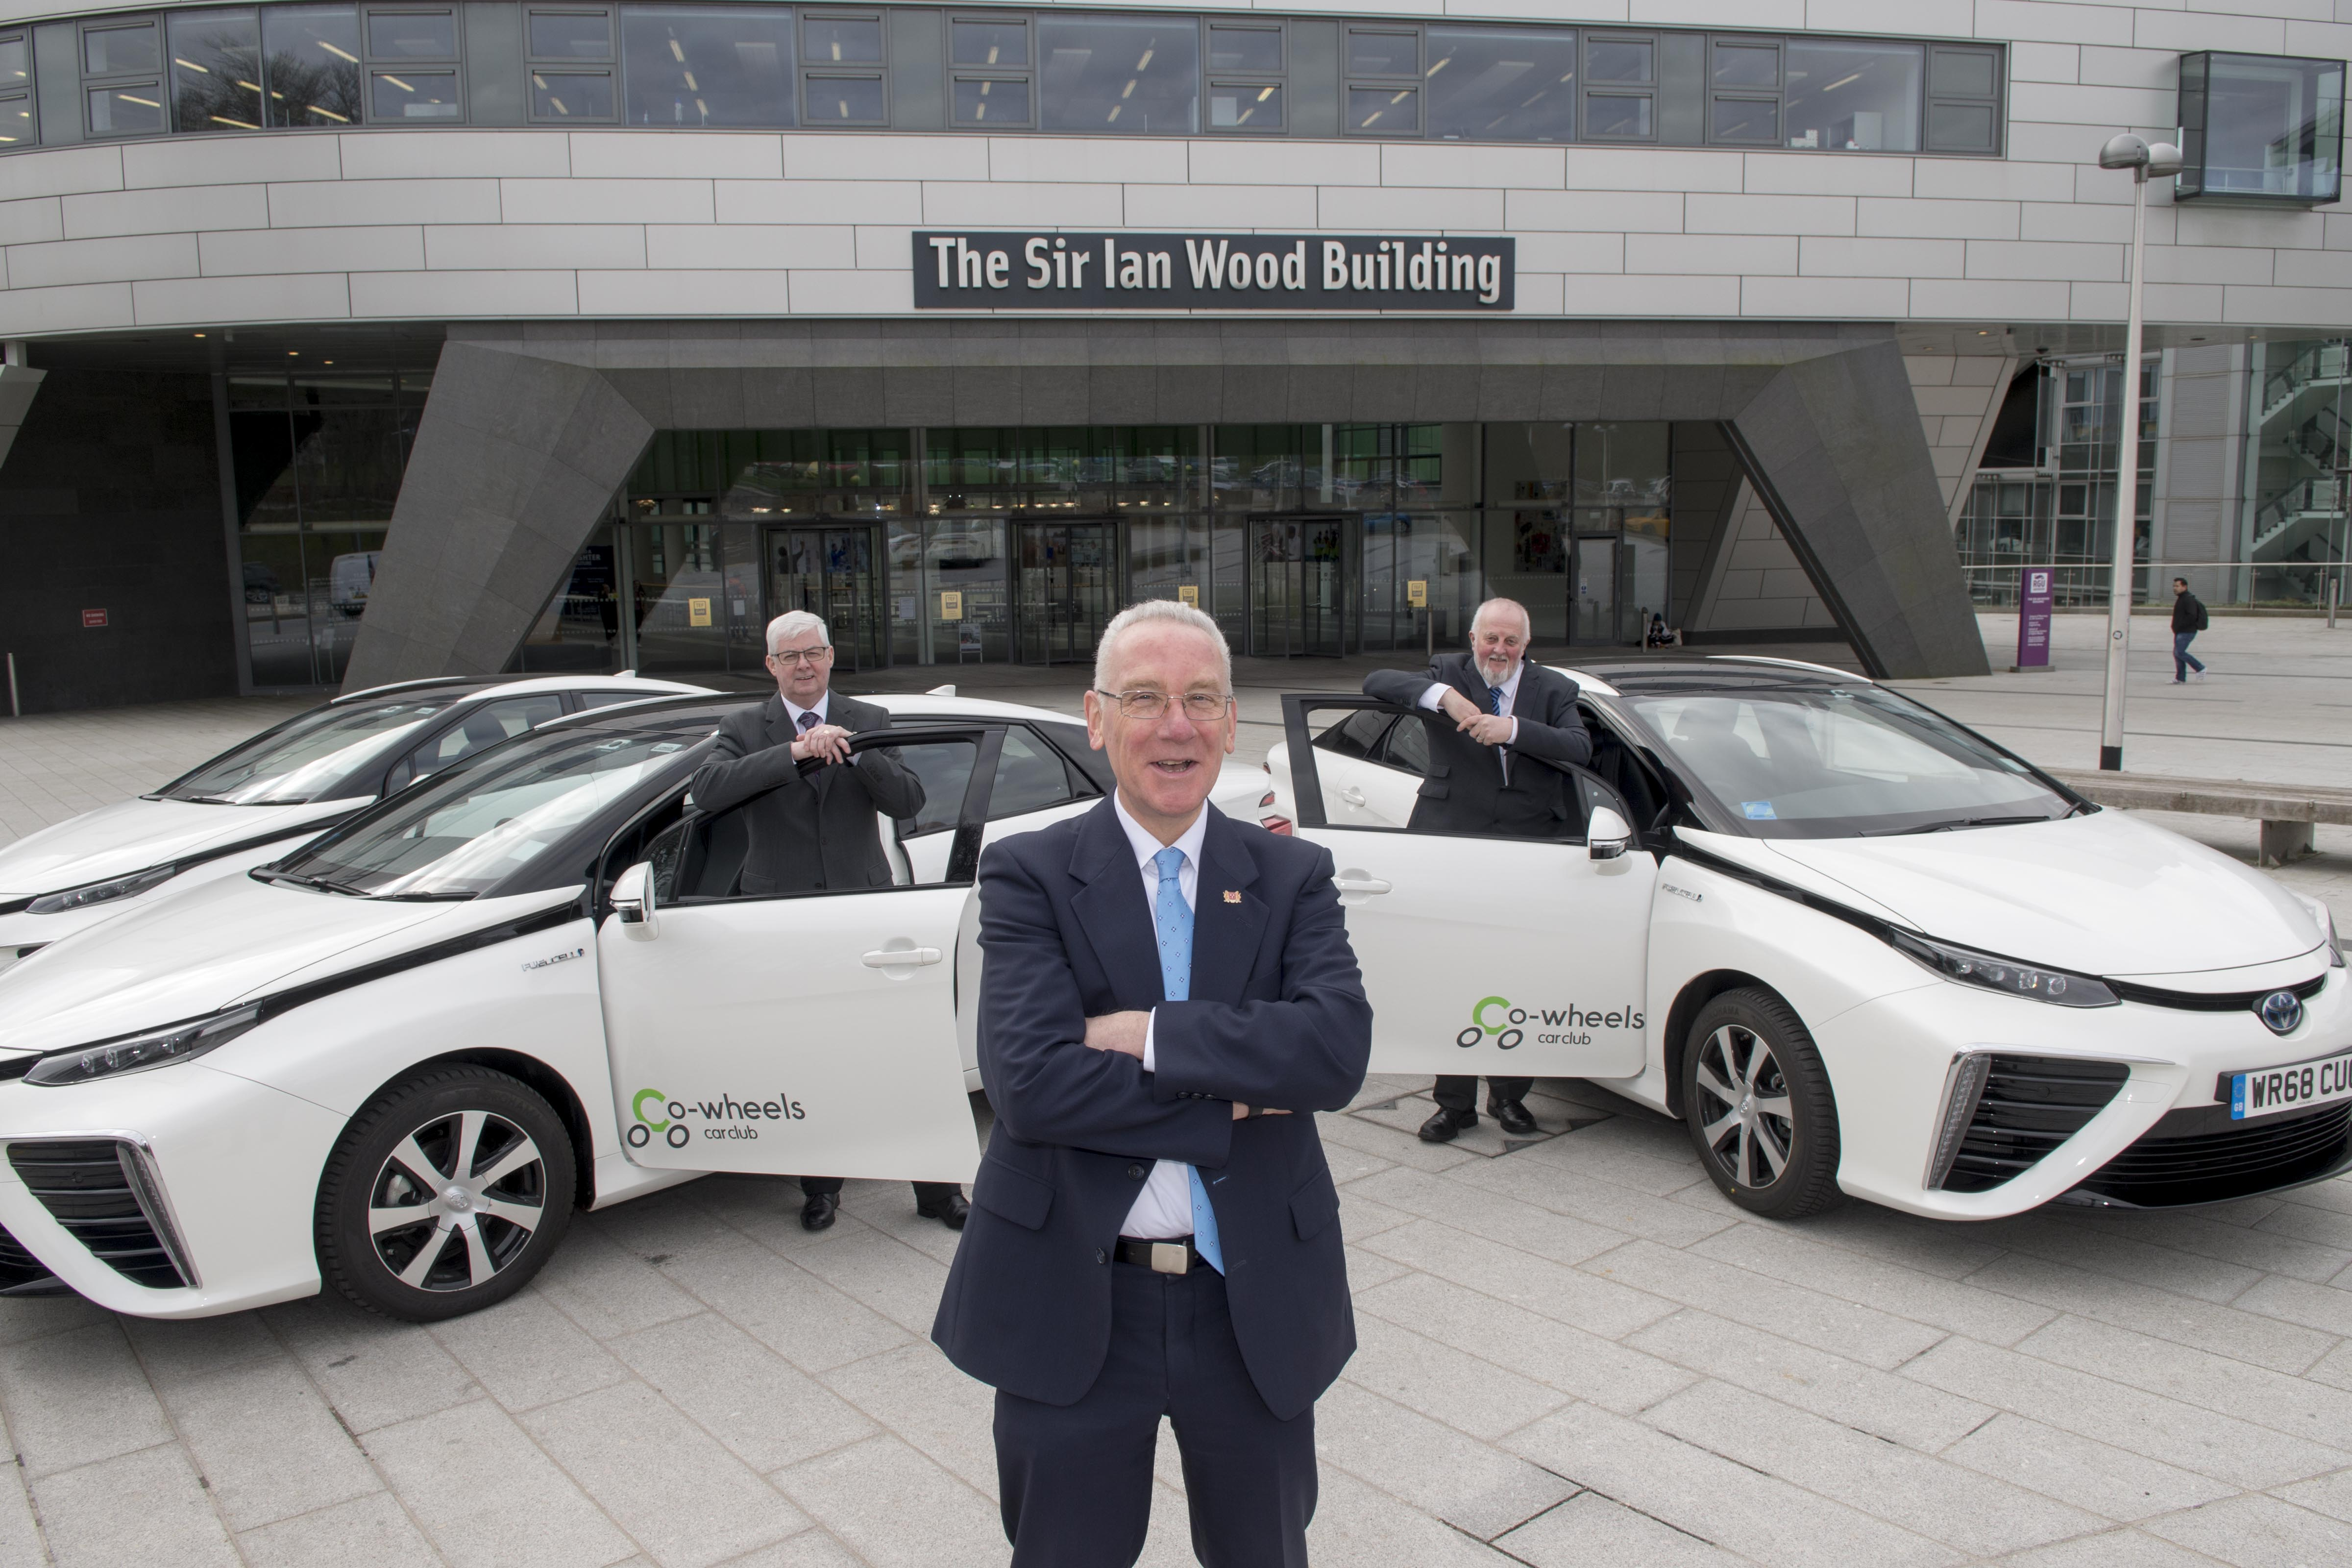 27/03/19 L-R Bill Somerville- RGU Director of Estates and Properties Services,Councillor Philip Bell, Aberdeen City Council's operational delivery vice convener, Co-wheels Car Club Scotland Manager Tony Archer  Aberdeen City Council's ambitious hydrogen programme is set to reach an even wider audience with the addition of the first two cars available for public use.The Toyota Mirai models will join the Co-wheels Car Club fleet in the city and will be available for club members to hire through the online booking system.The Mirai, winner of the World Car Awards' green car of the year award, uses hydrogen fuel cell technology to enable long-distance emission free motoring – with a range of about 300 miles.The cars have received EU Interreg North Sea Region funding through the Hydrogen Transport Economy (HyTrEc)2 Project in which Aberdeen City Council is a partner. This is part of the Aberdeen City Region Hydrogen Strategy and Action Plan 2015-2025 to develop a hydrogen economy in the region.The distinctive cars are already becoming a familiar sight on the Aberdeen roads, with the council already using the Mirai as part of its fleet.The two new additions to the public Co-wheels hire will be stationed at Gallowgate Car Park and East Craibstone Street from 1 April.Aberdeen has two hydrogen refuelling stations, at Kittybrewster and Cove, to support the growing fleet of cars, buses, and commercial vehicles operating in the city as part of the innovative programme.